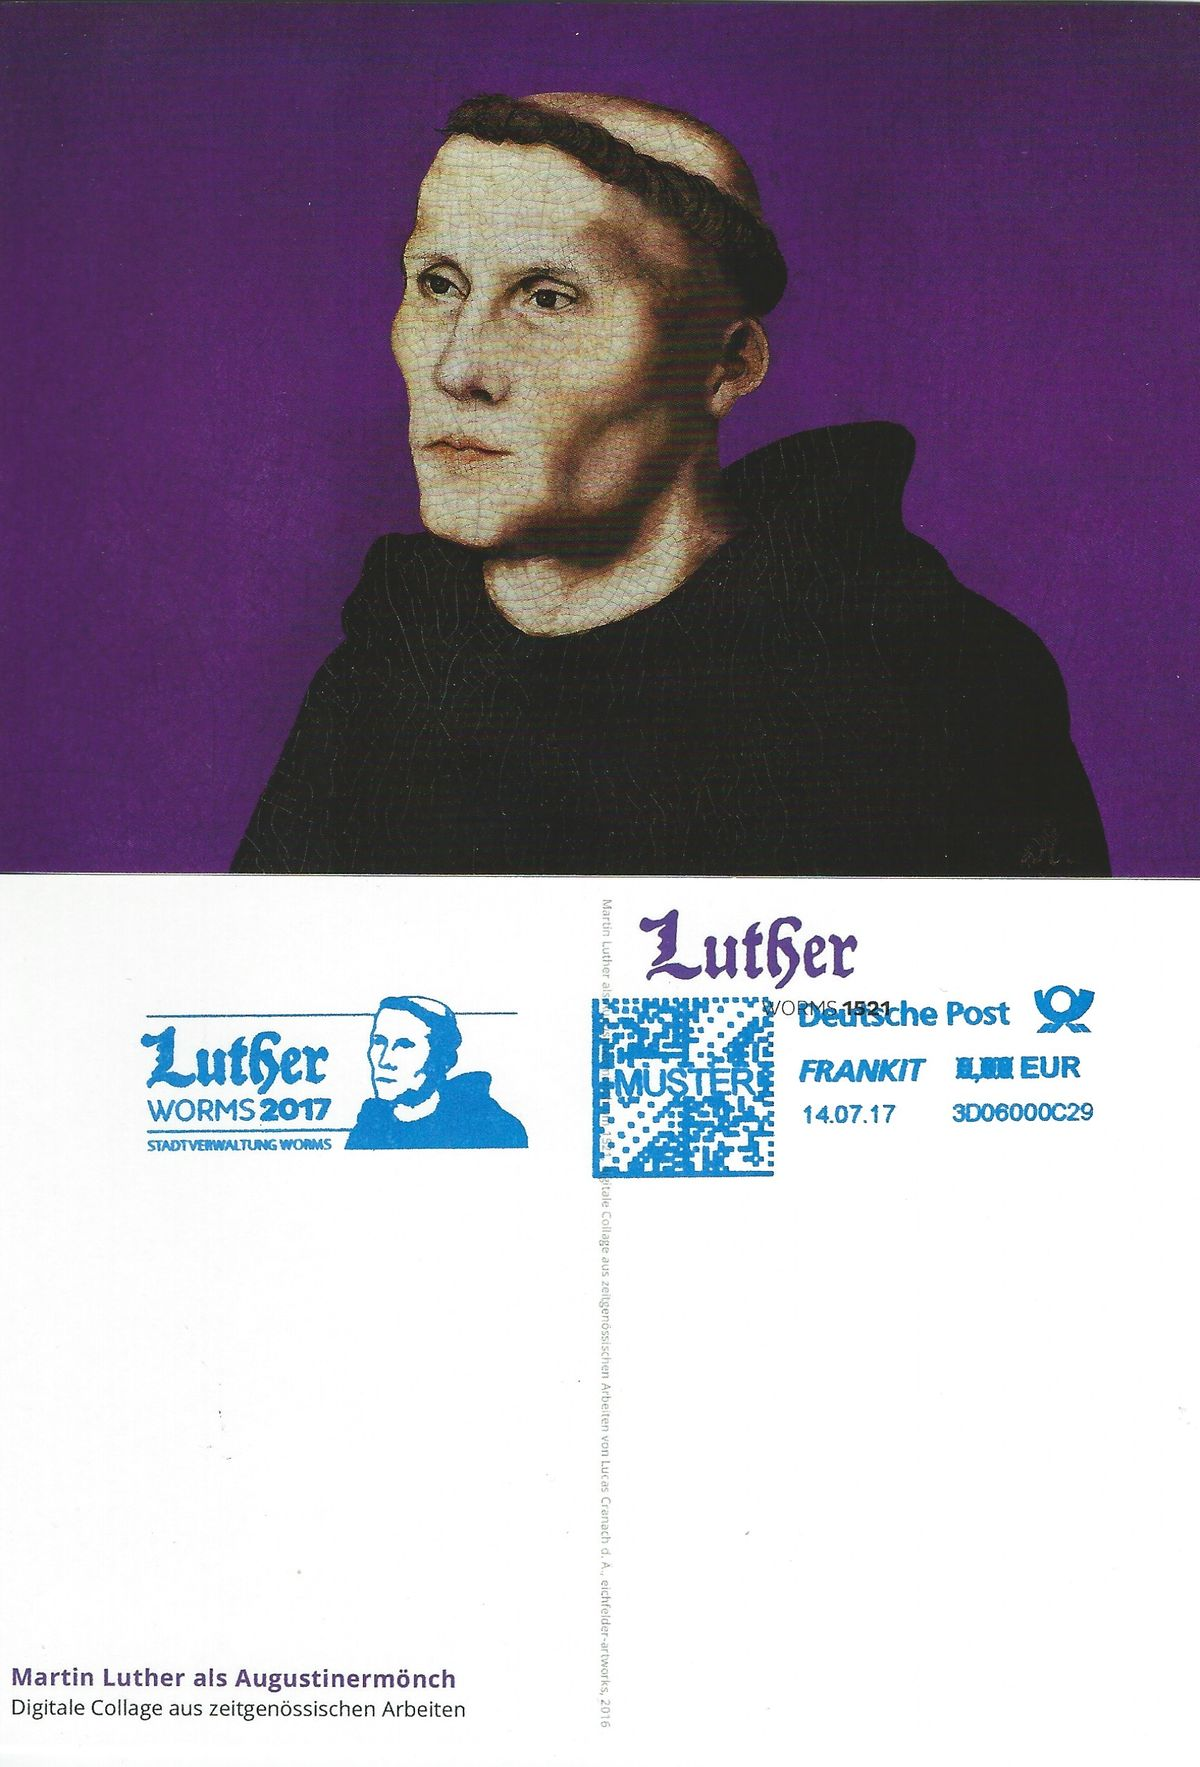 2017.07.14_Worms_Maschinenstempel_Testdruck auf Postkarte_MartinLuther